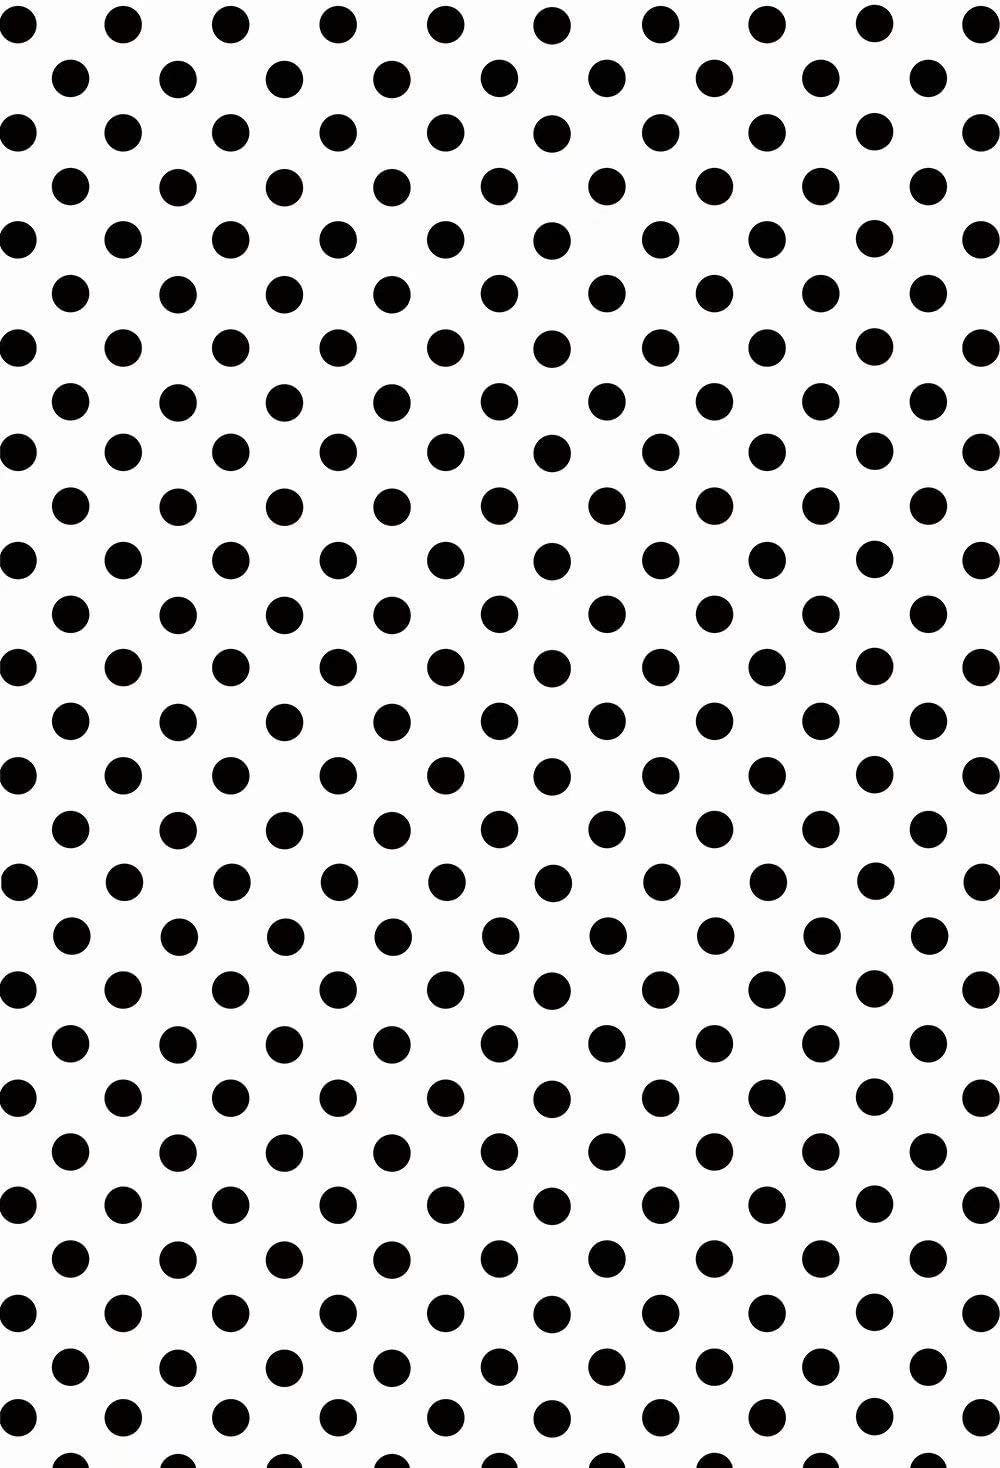 HUAYI White/Fabric/with Black/dots/Backdrop/Happy/Birthday/Party/and/Baby/Shower/Photography/Background/Celebration/Event/Decorations/Banner/Photo/Studio/Props P